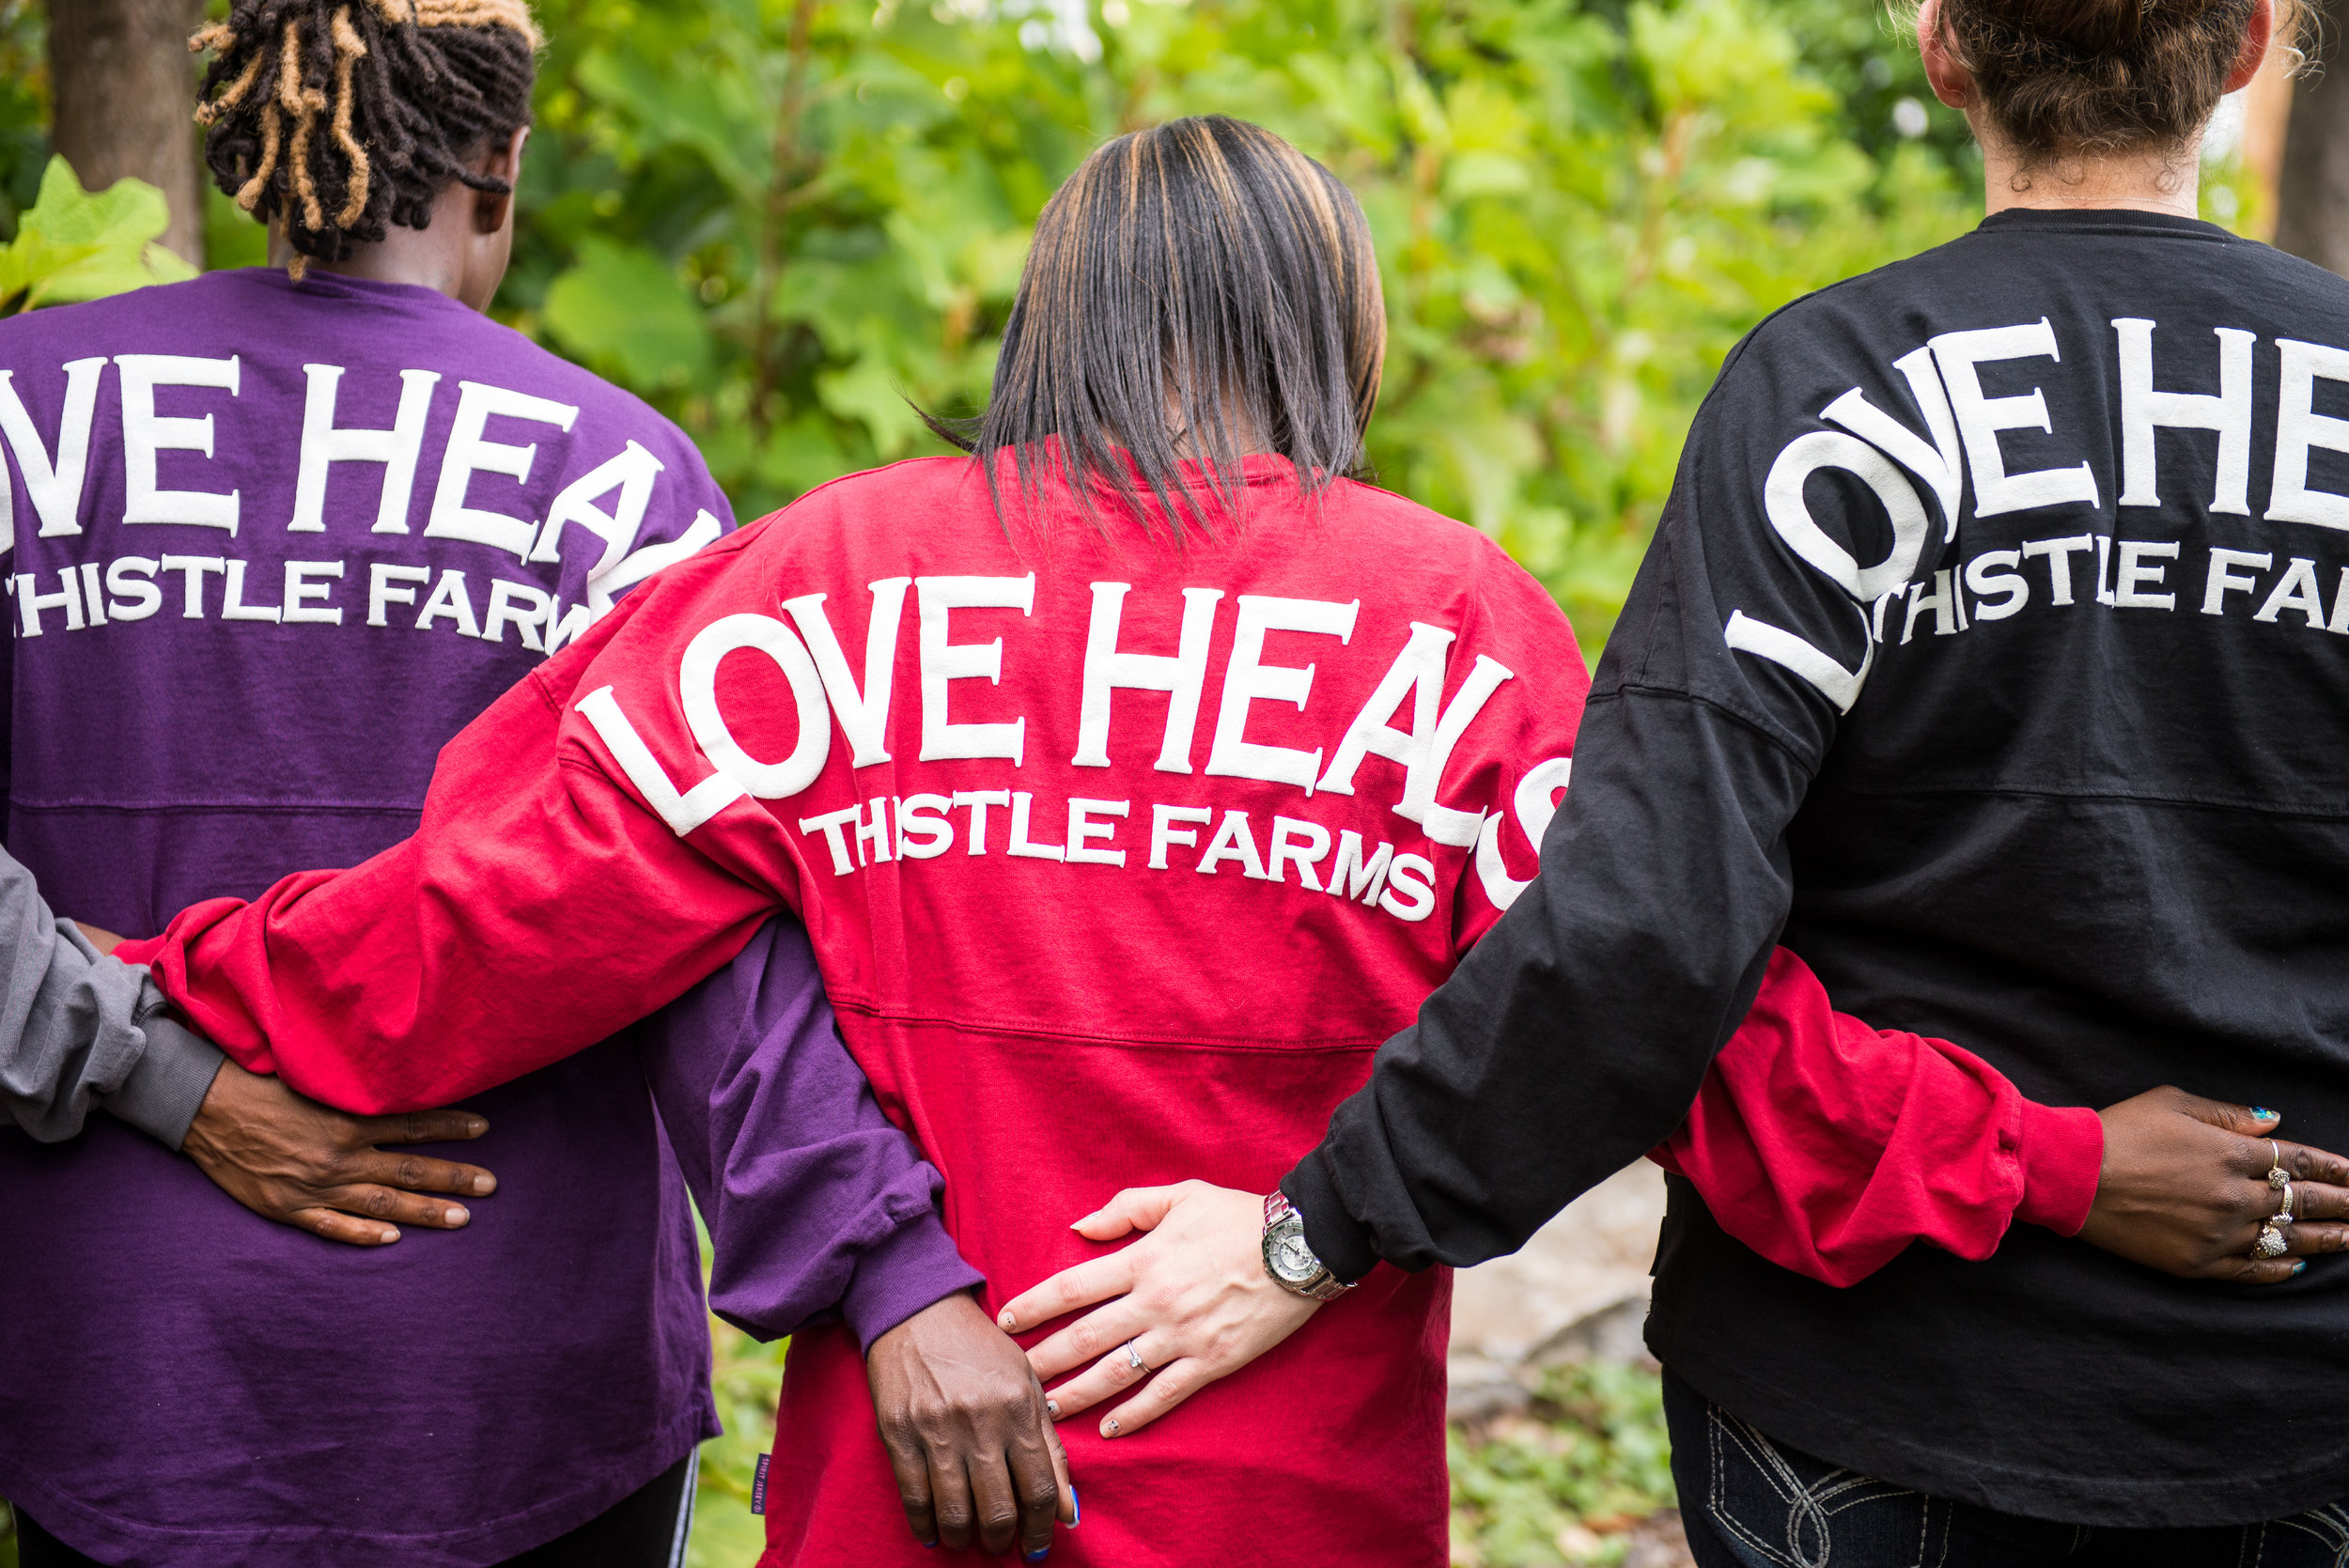 Thistle Farms Women with Love Heals Jerseys. Photo Peggy Napier